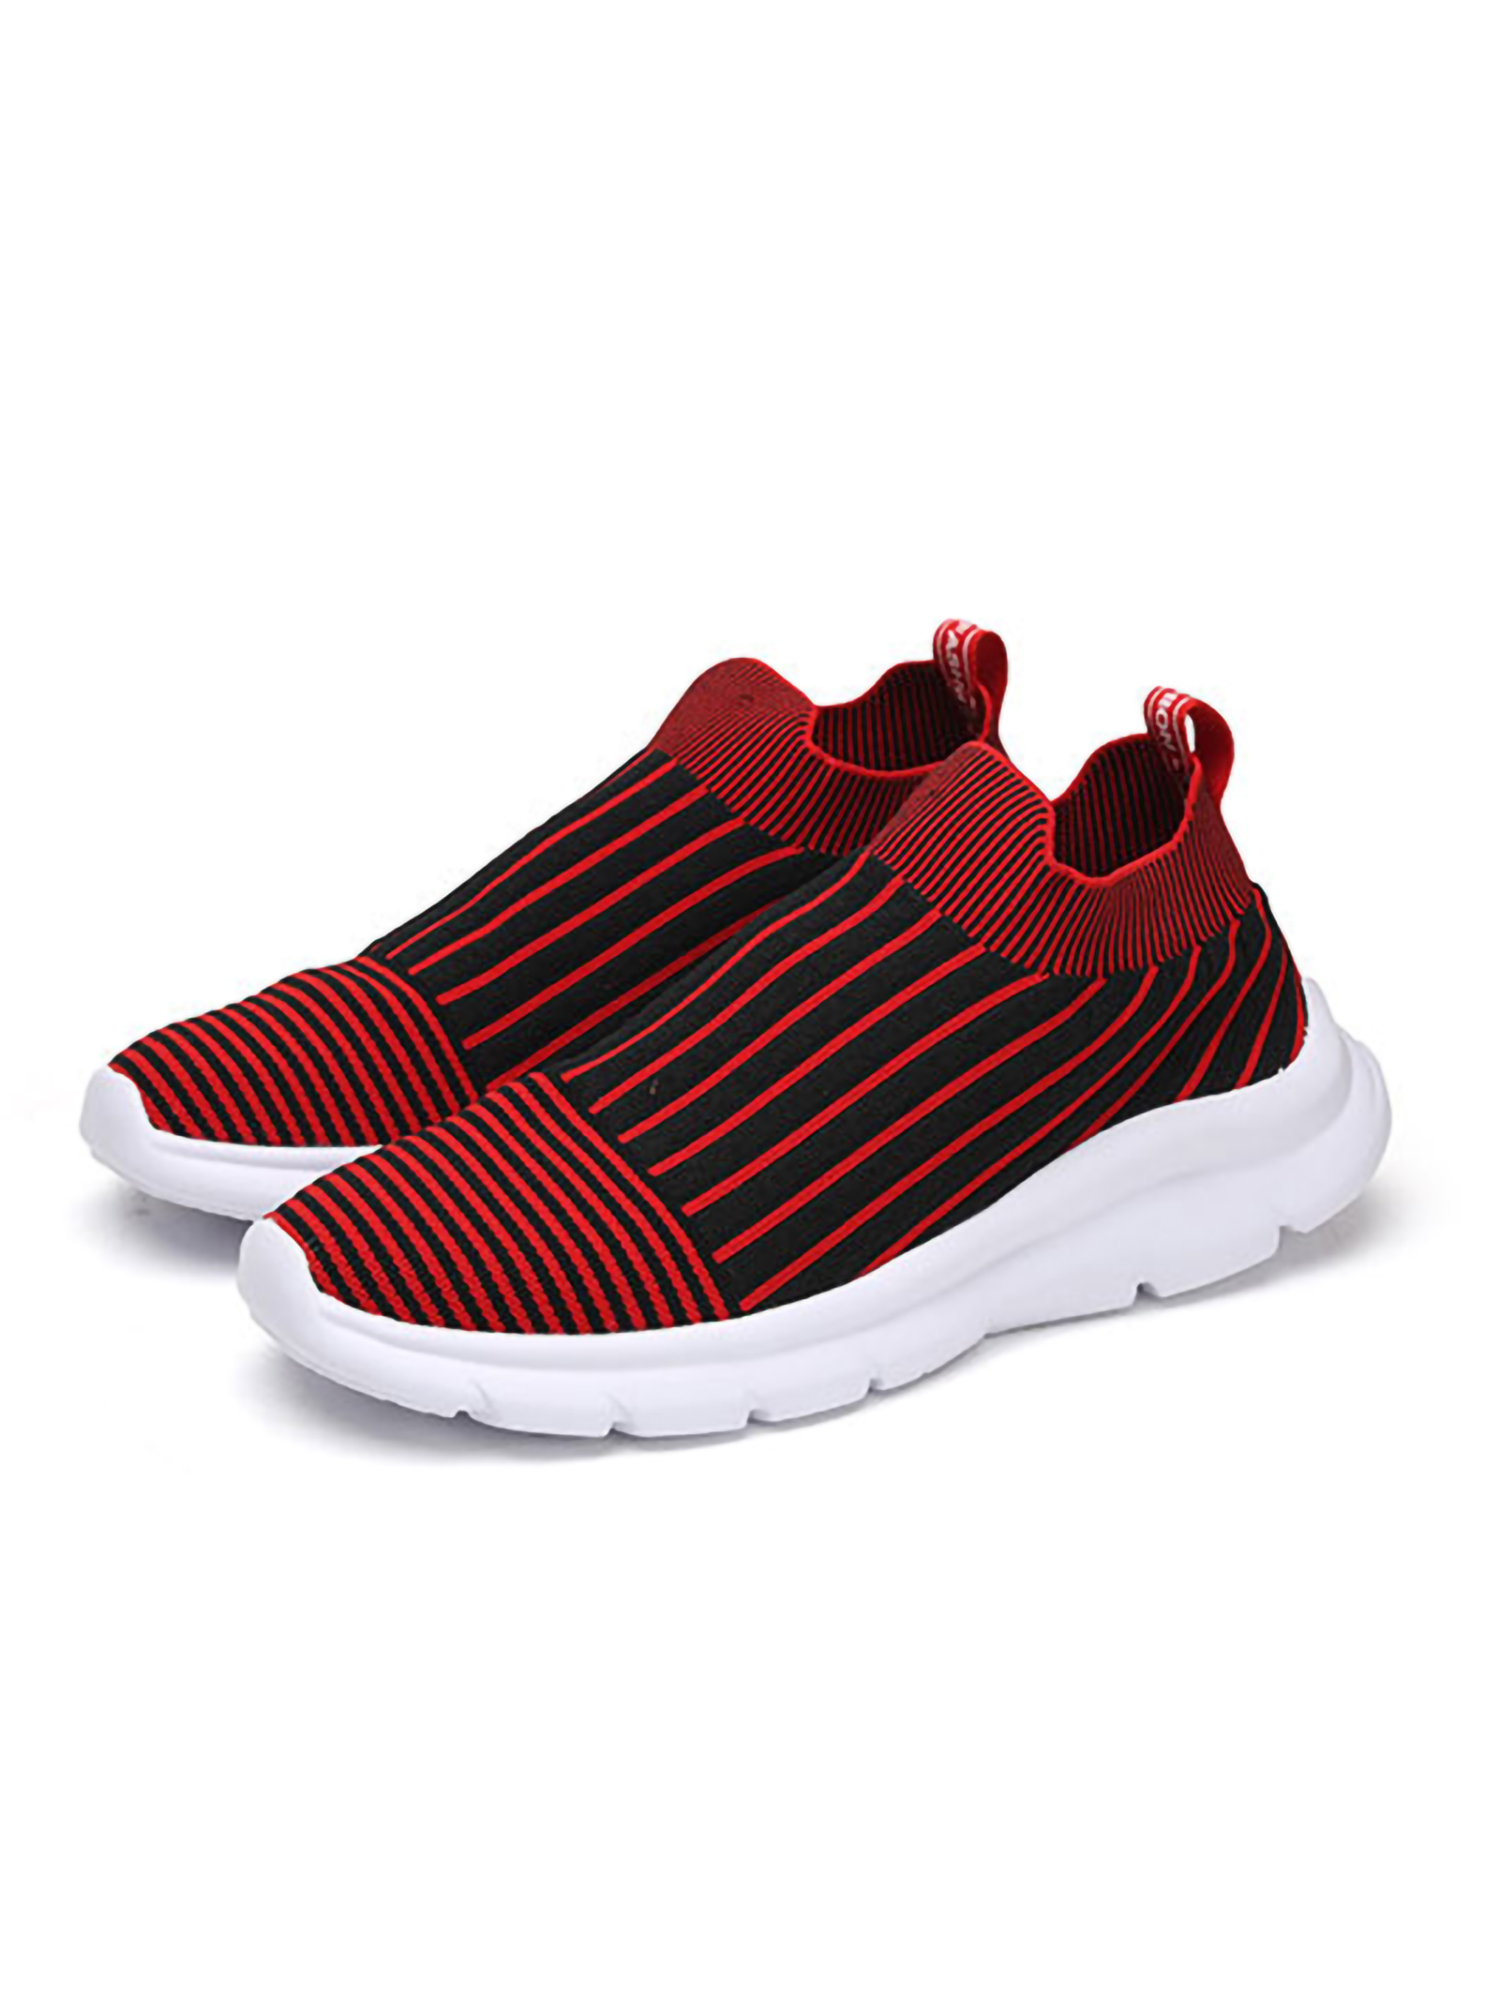 Mens Runing Shoes Athletic Walking Tennis Lightweight Breathable Shoes Non Slip Comfort Casual Sneakers